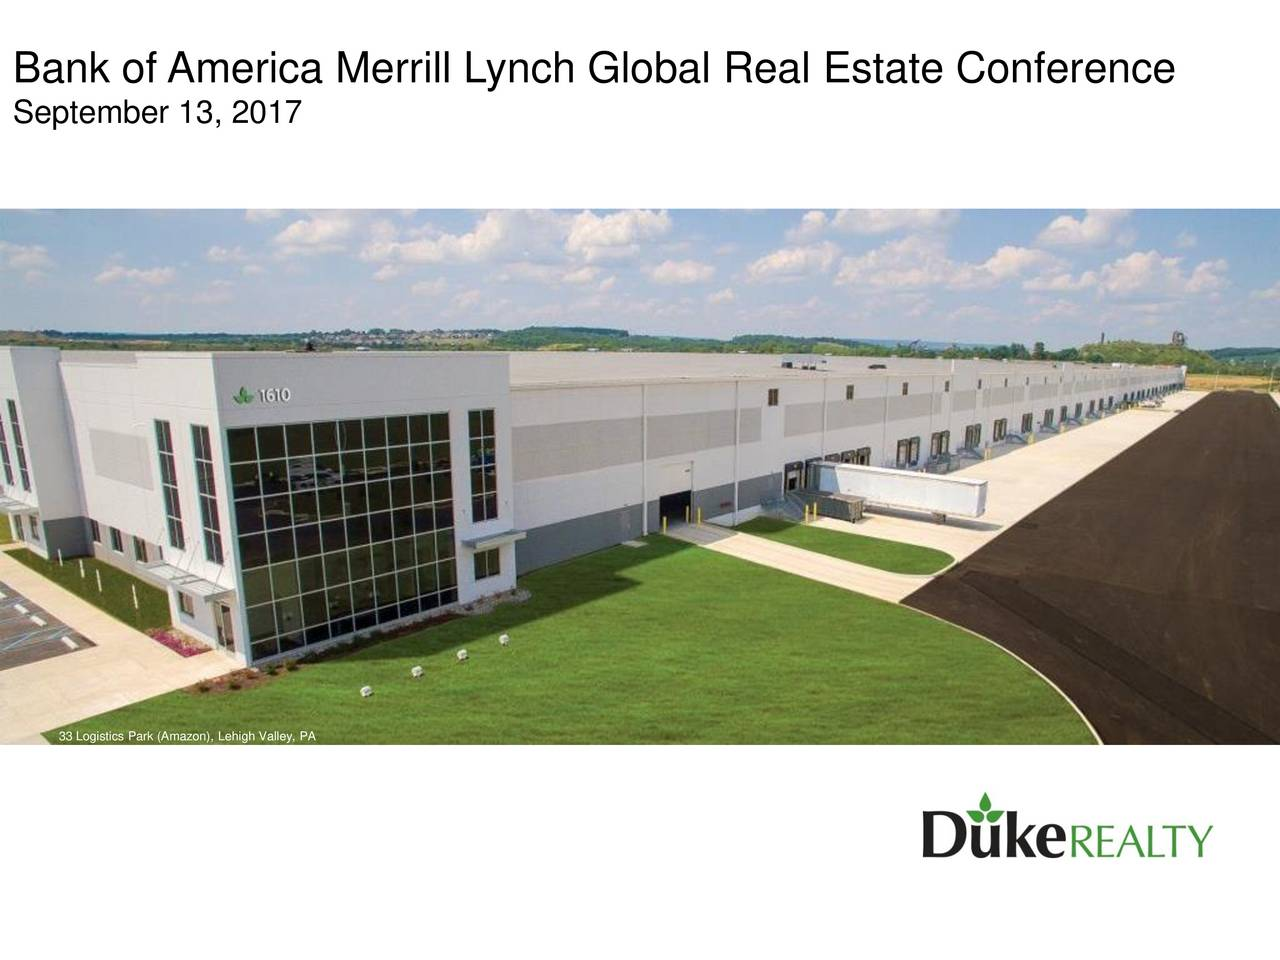 bank of america merrill lynch global real estate conference 2017